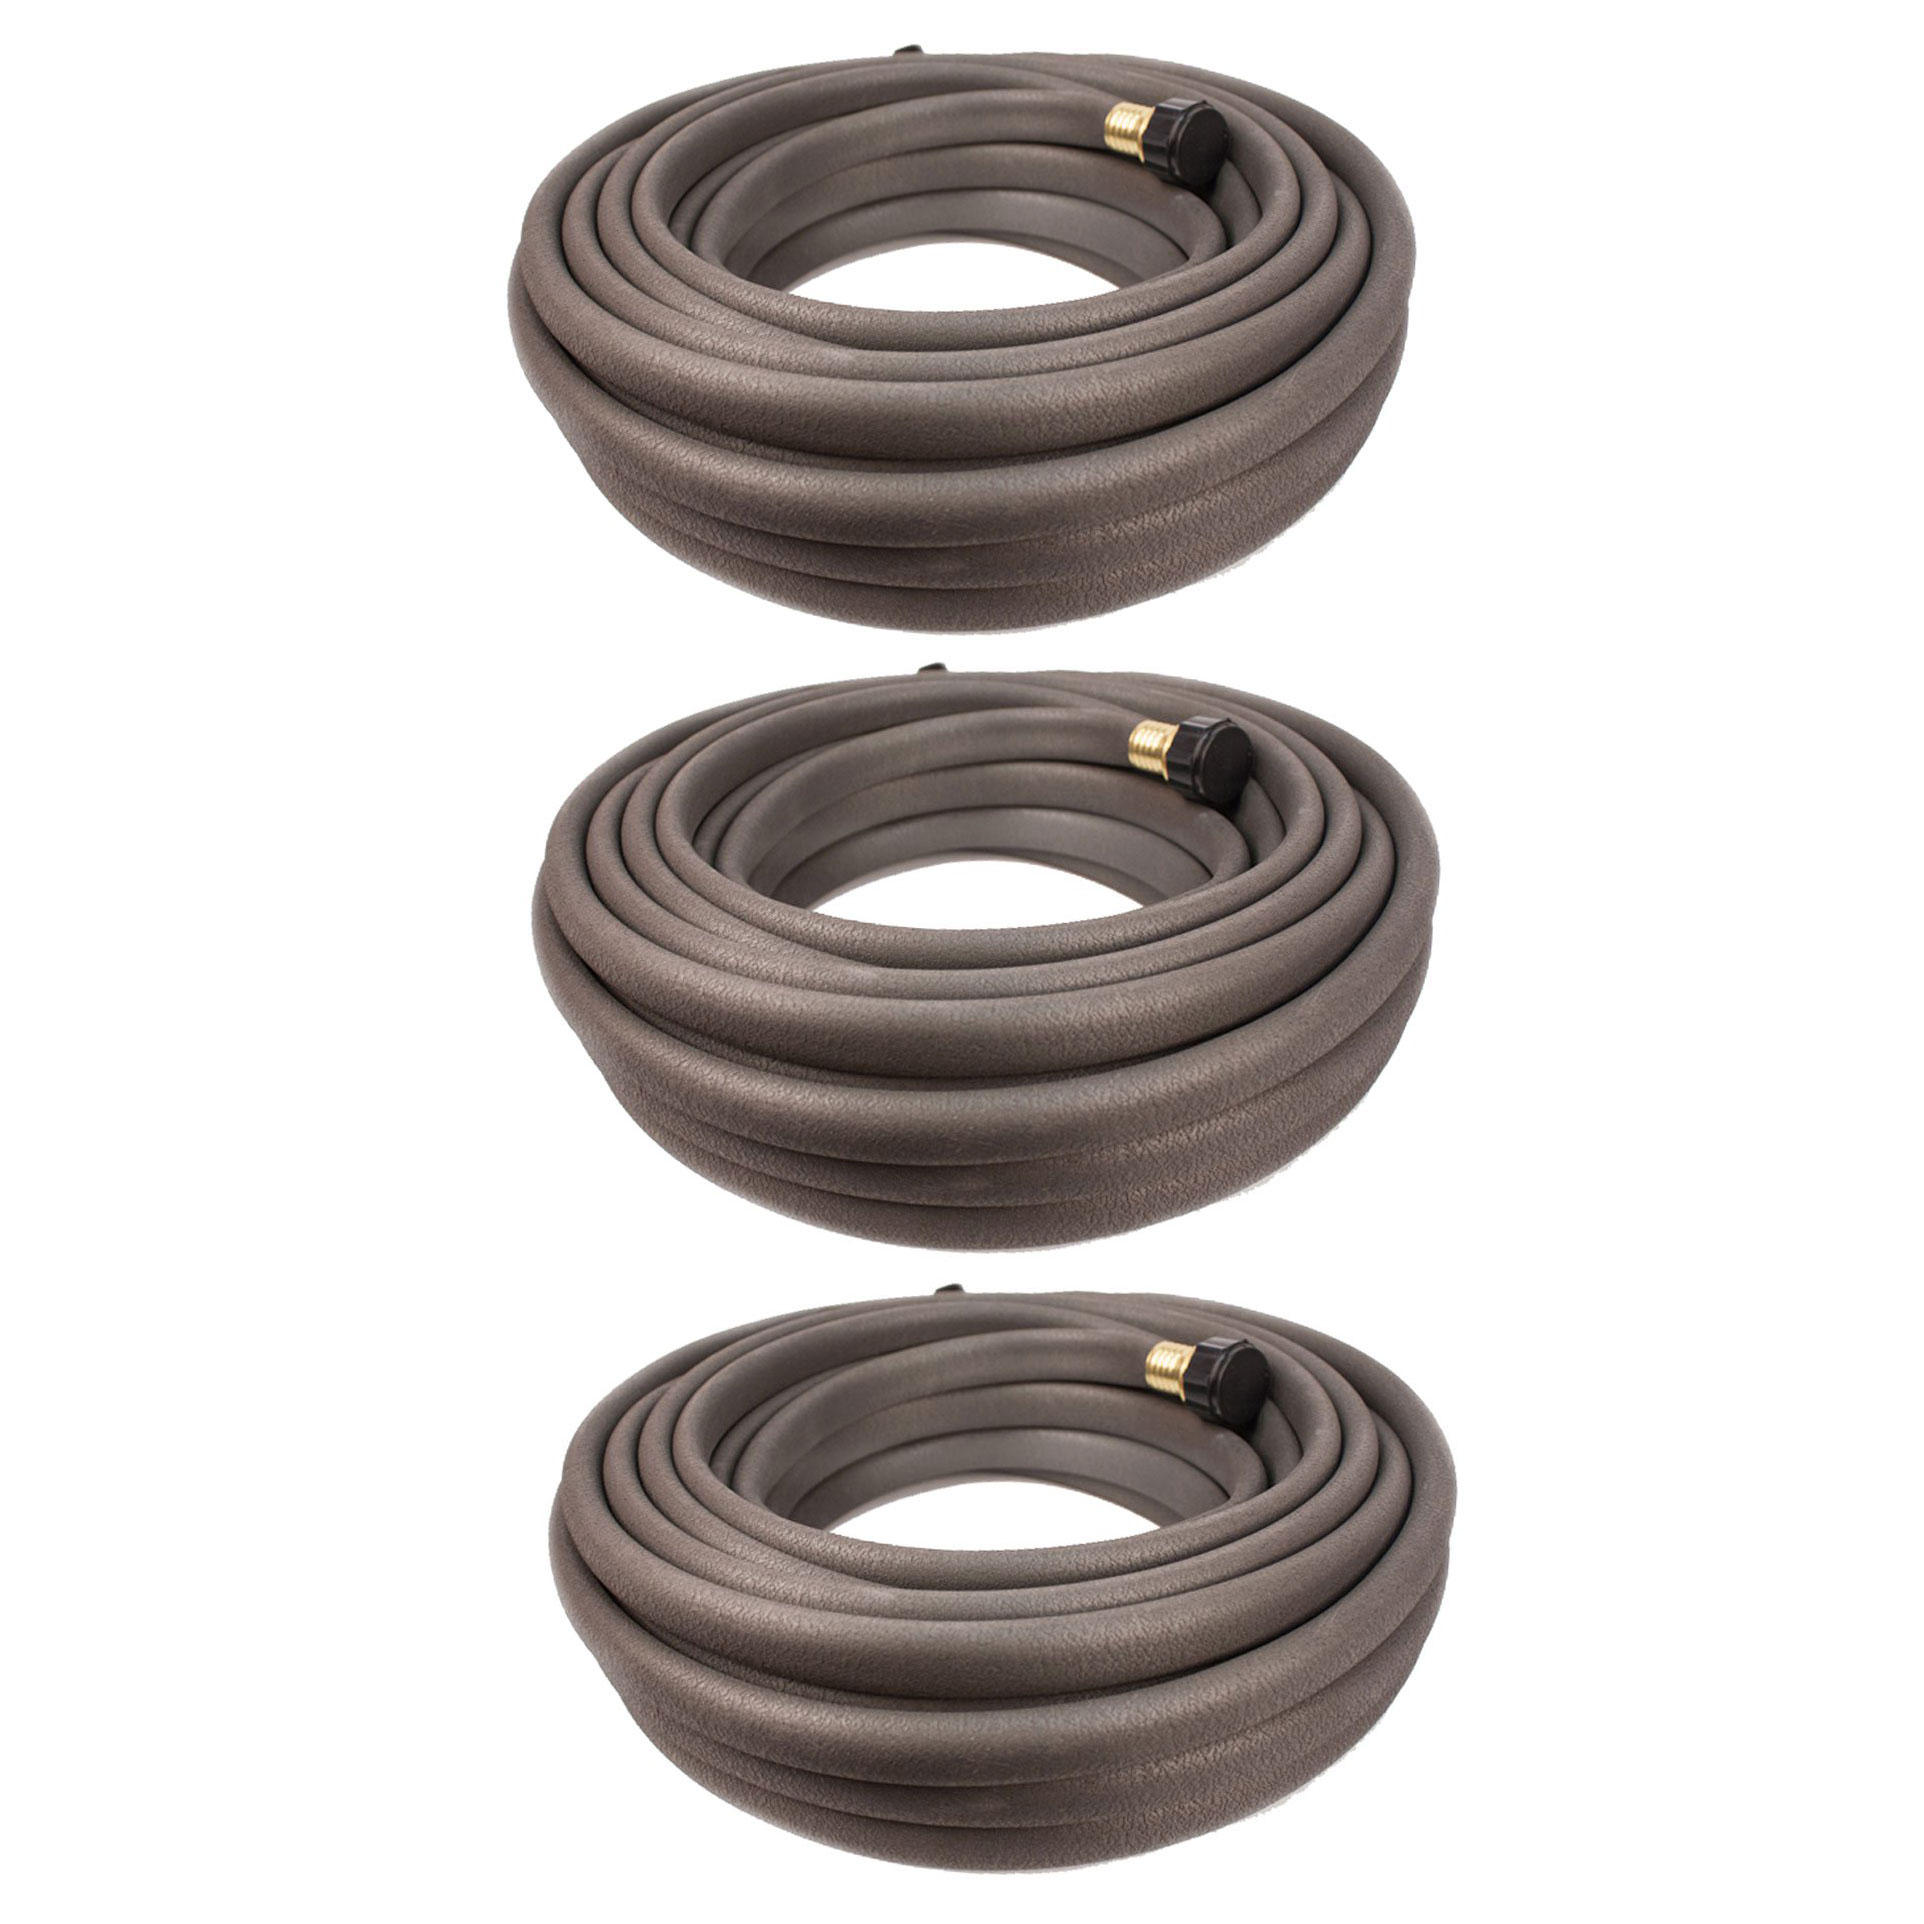 Apex 50 Foot Flexible Water Conservation Garden Soil & Root Soaker Hose (3 Pack)